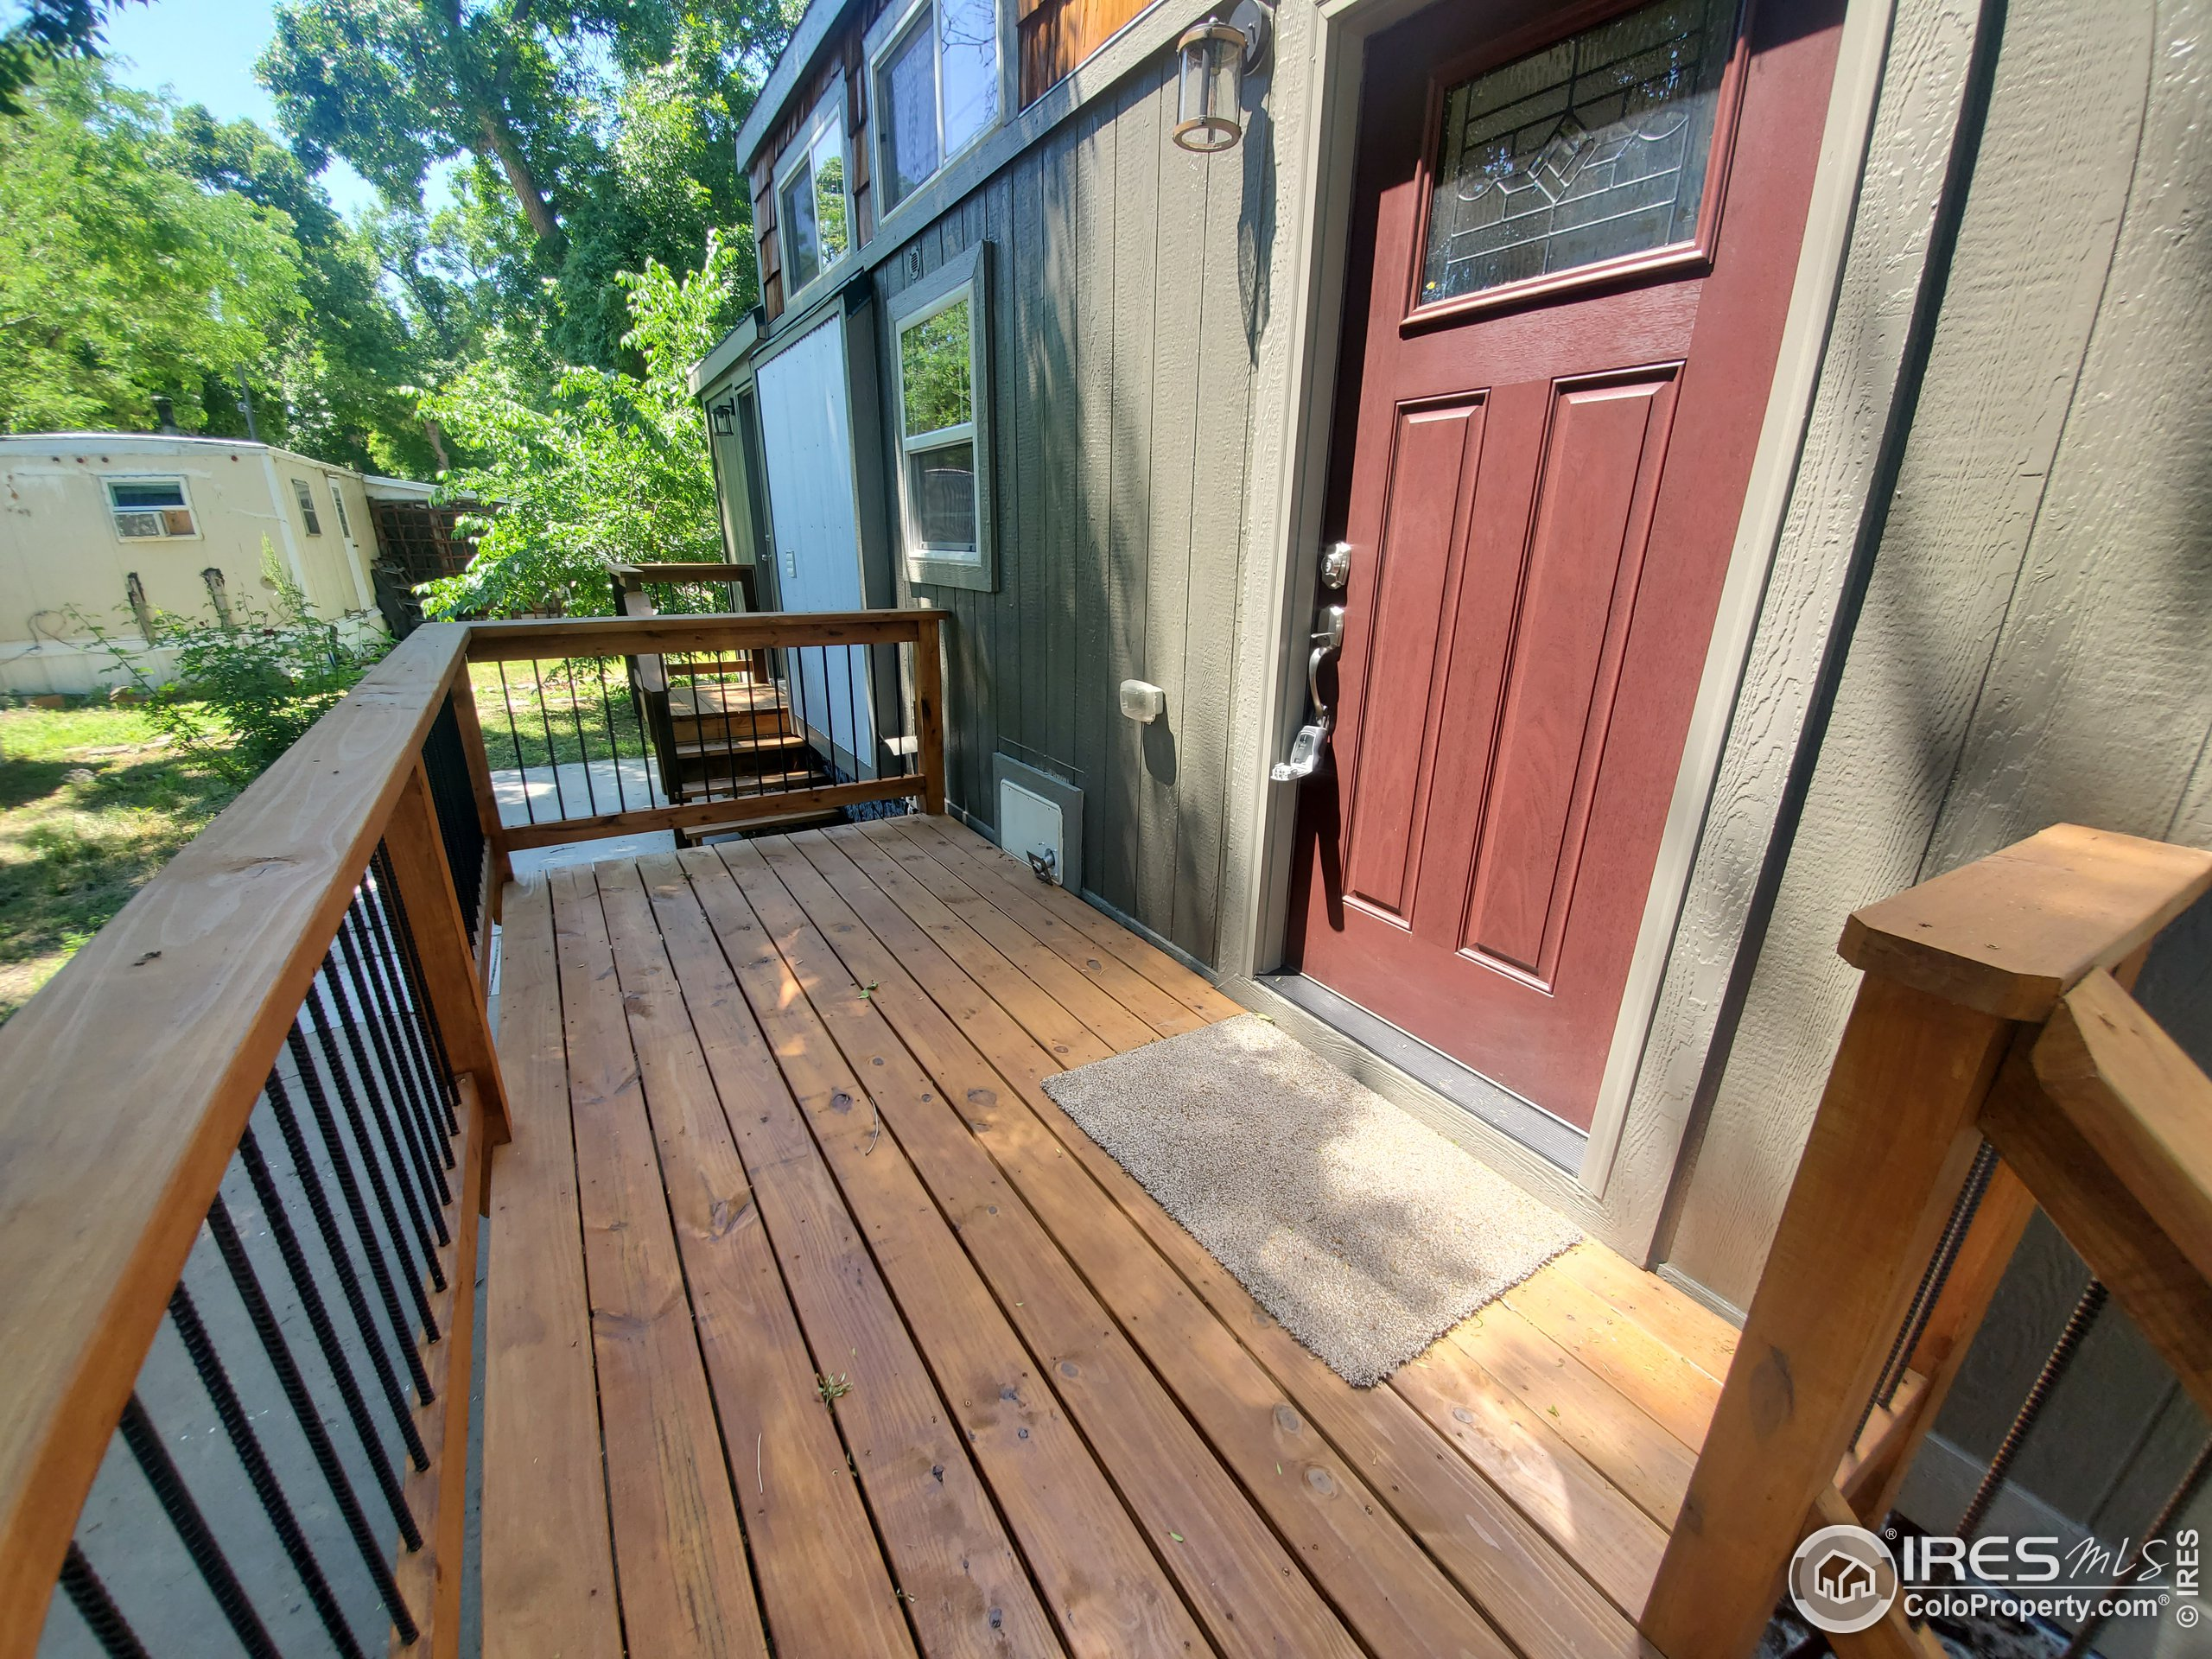 Great front deck